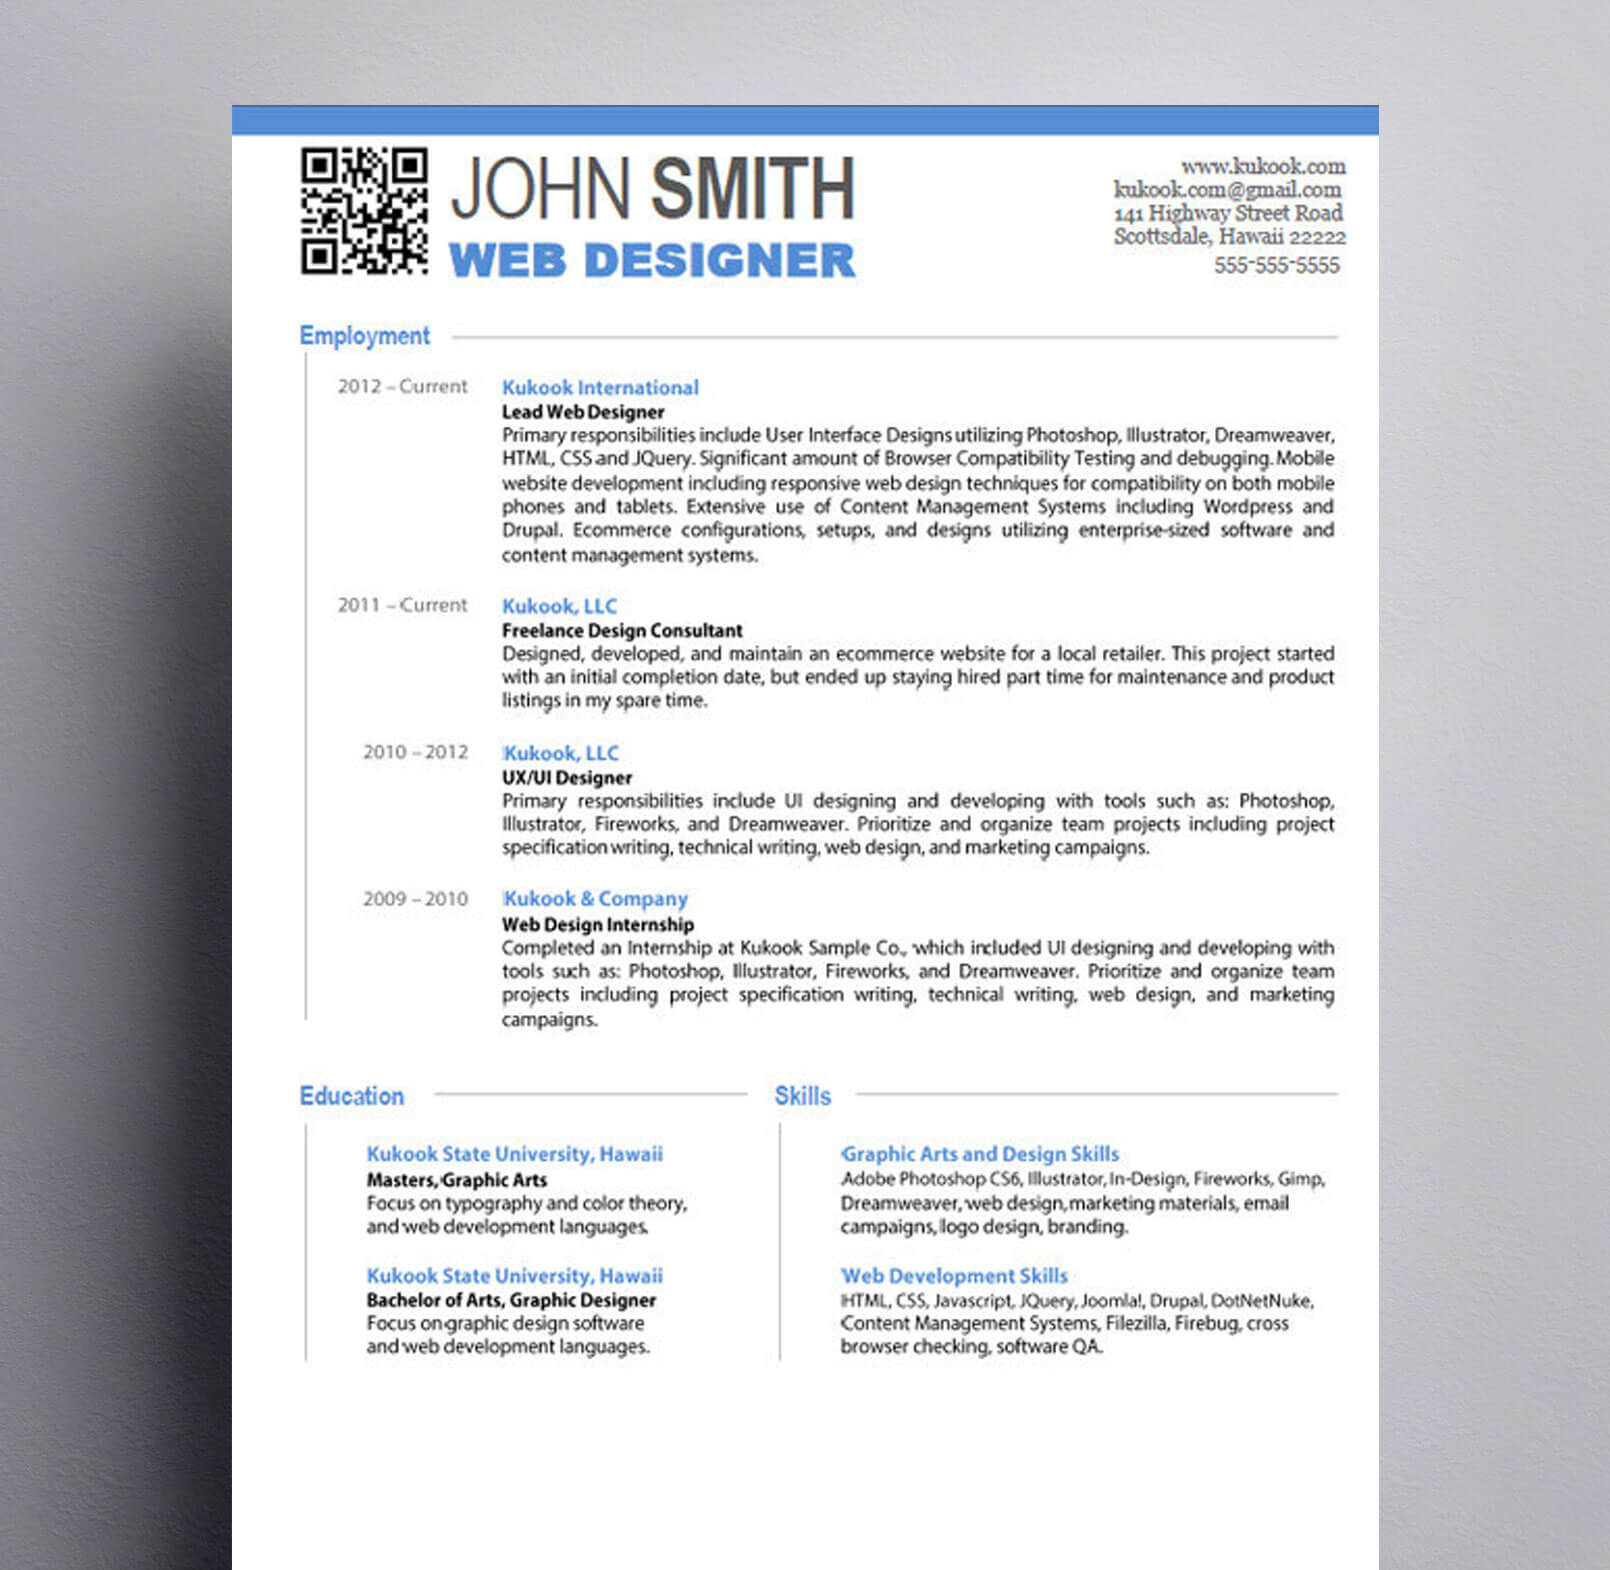 Graphic design resume kukook graphic design resume altavistaventures Image collections